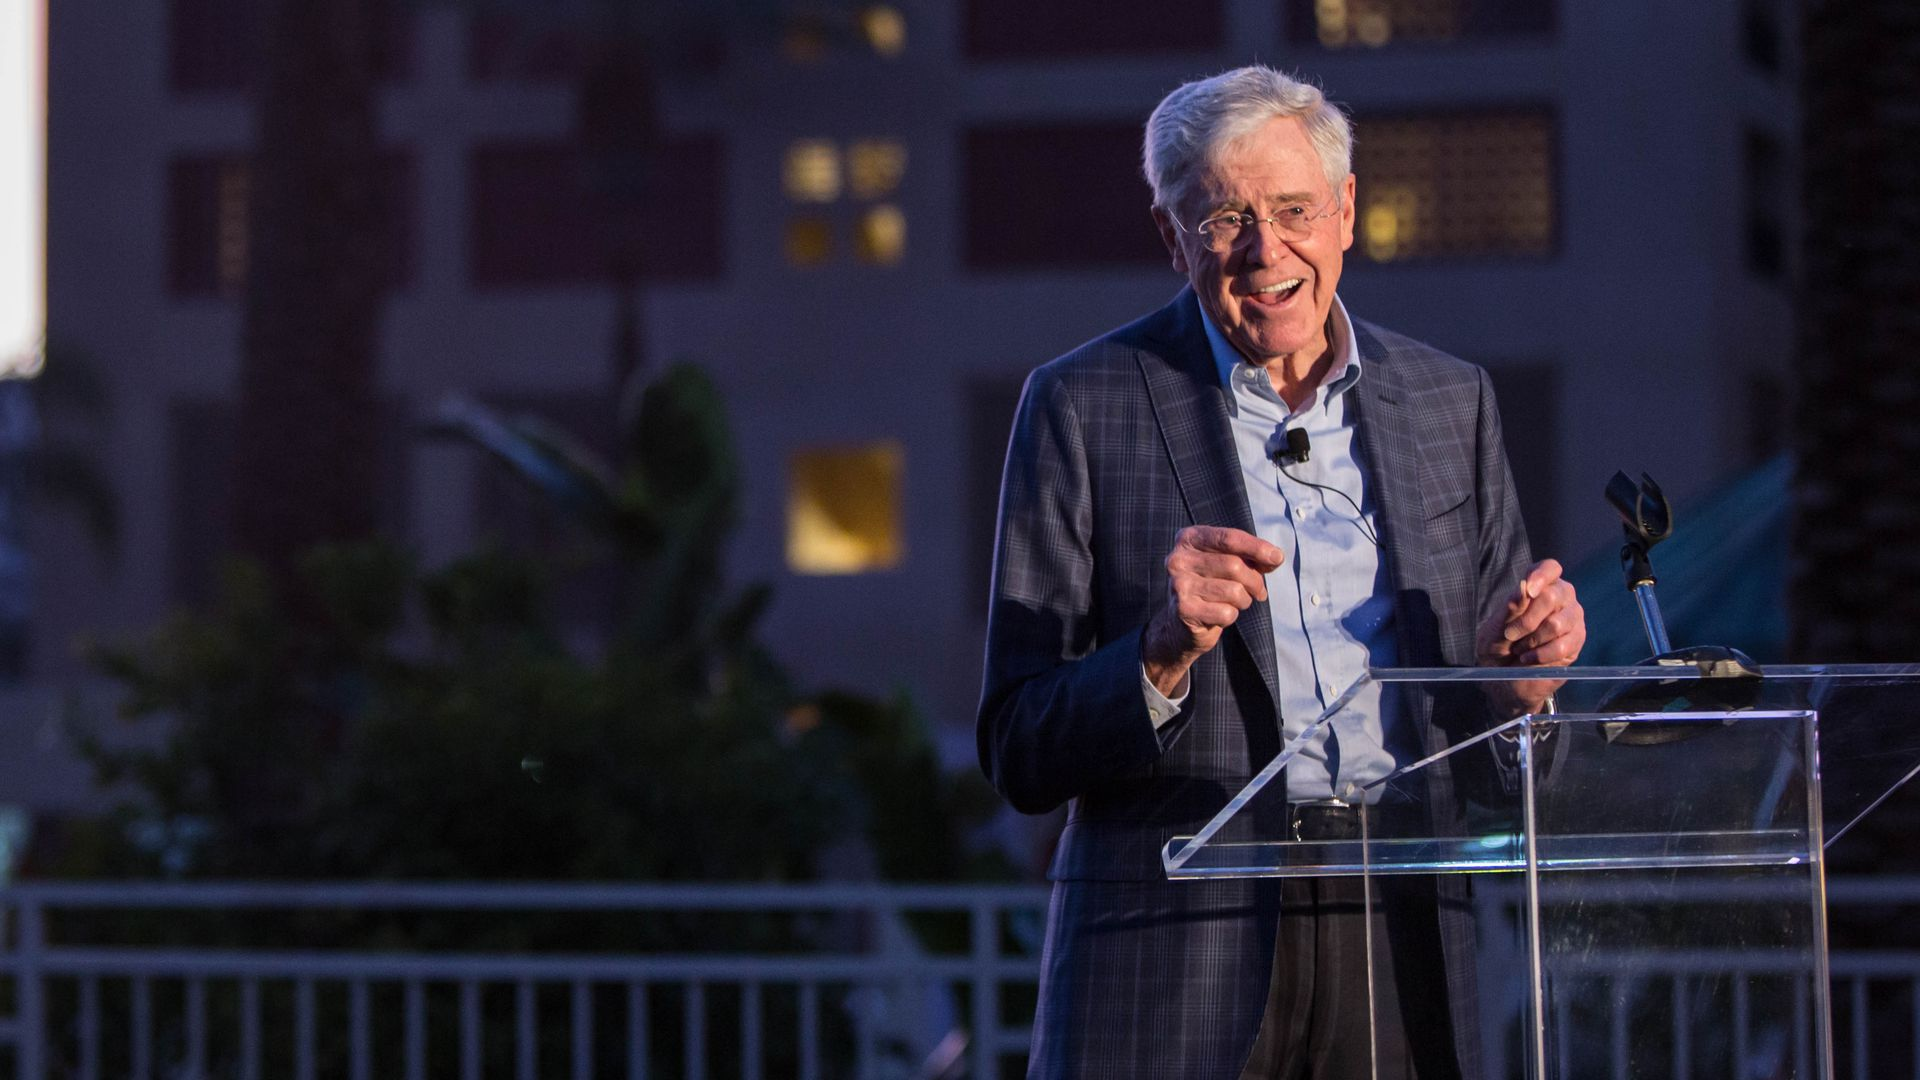 Charles Koch speaks at the network's 2018 winter seminar. Photo: Seminar Network.